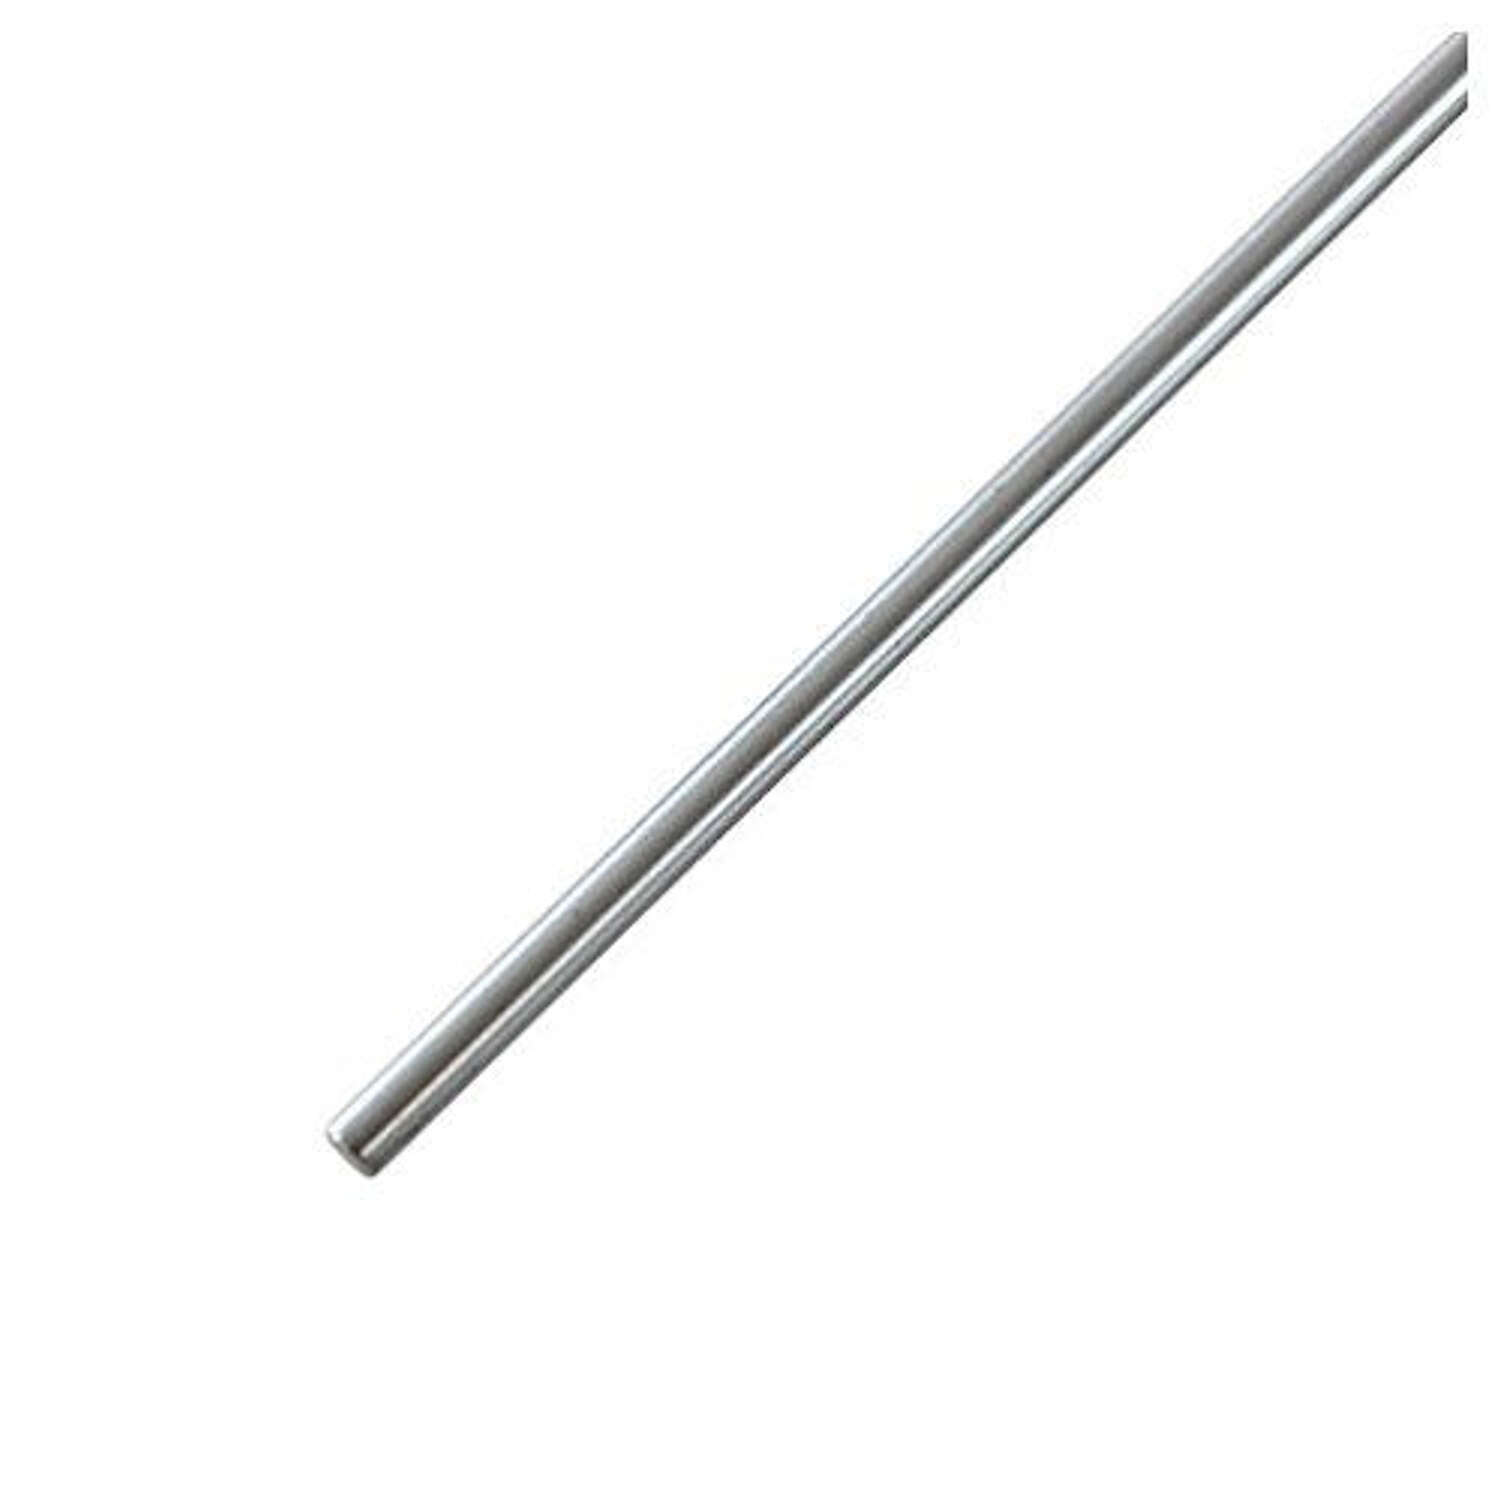 K&S  12 in. L x 1/4 in. Dia. Unthreaded Rod  Stainless Steel